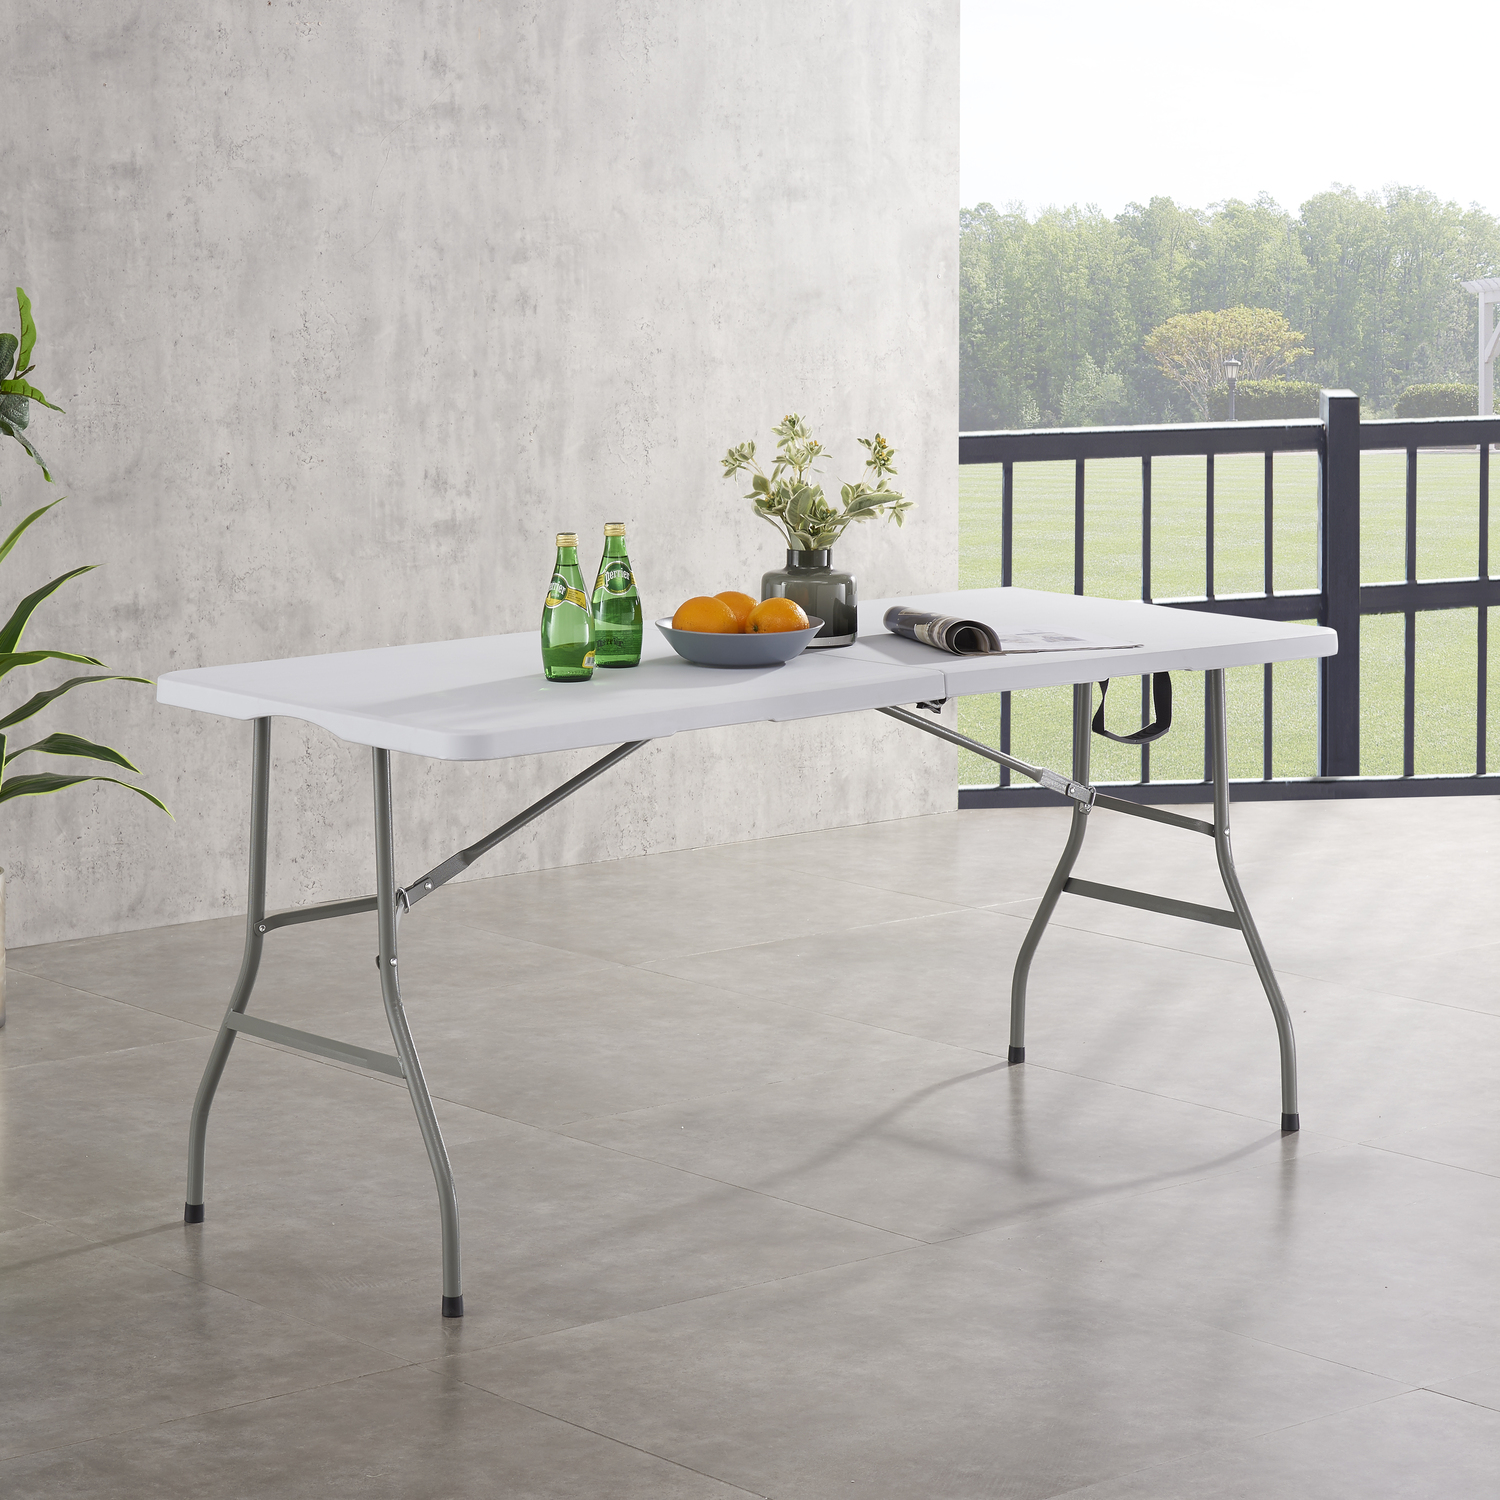 Naomi Home Multipurpose Rectangle Resin Center Folding Table